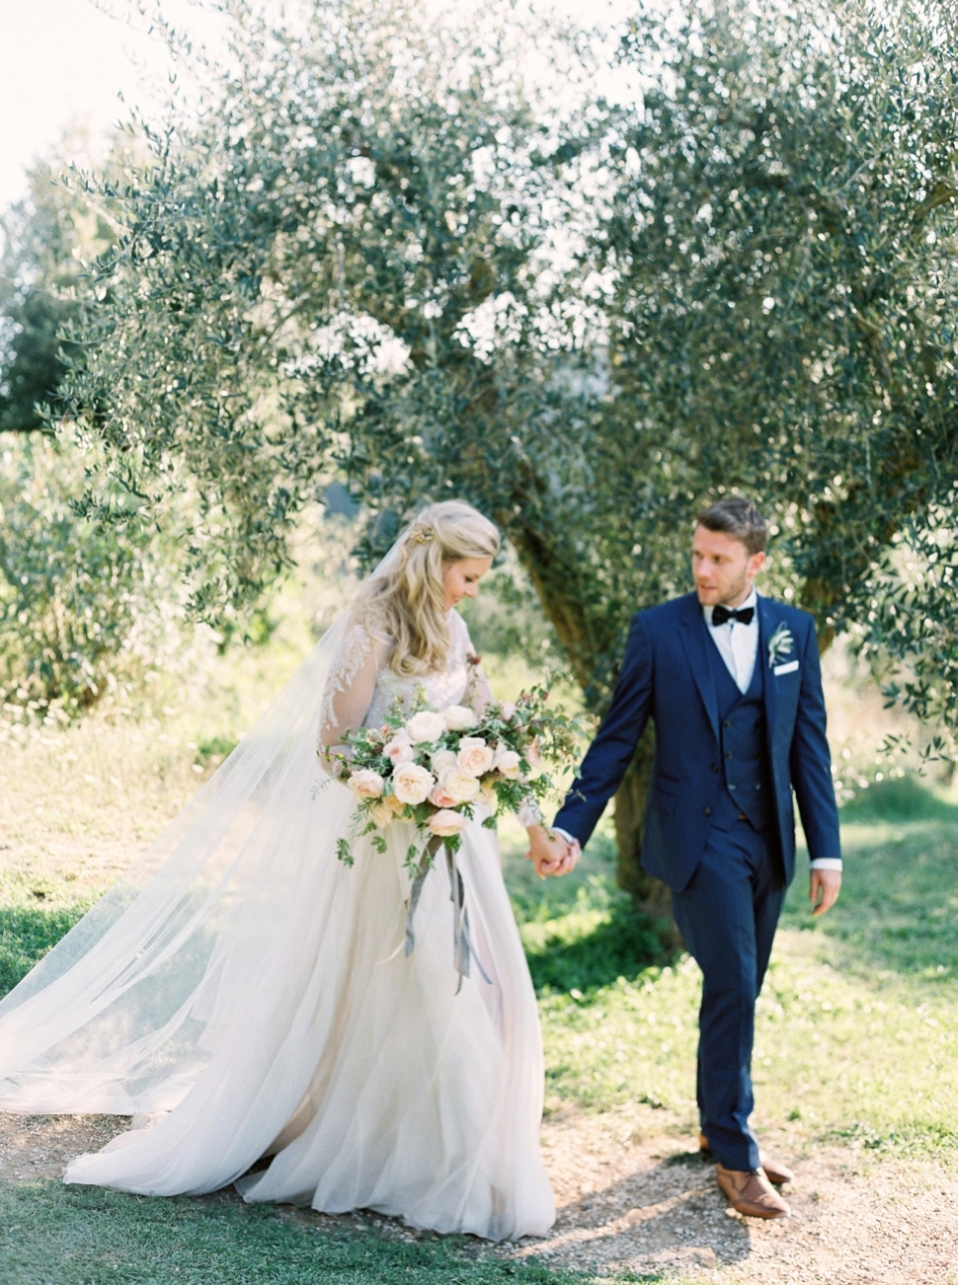 Borgo di Tragliata Wedding | Laura Gordon Photography_0001